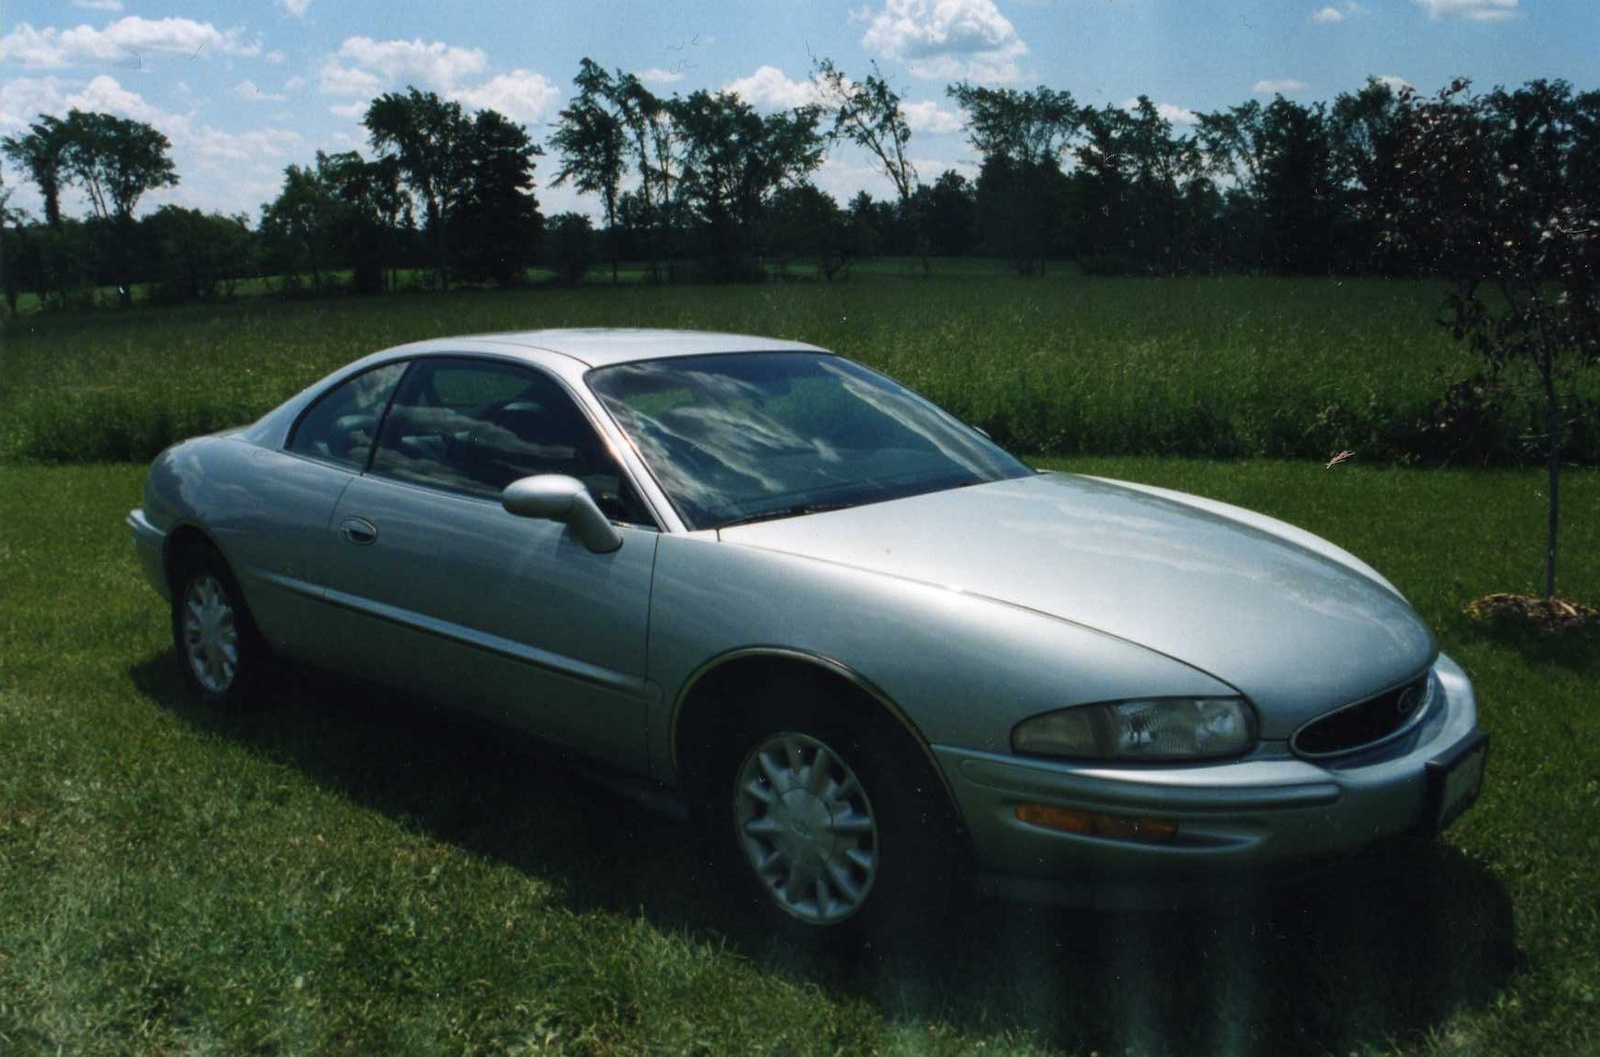 buick riviera 1995 images #12